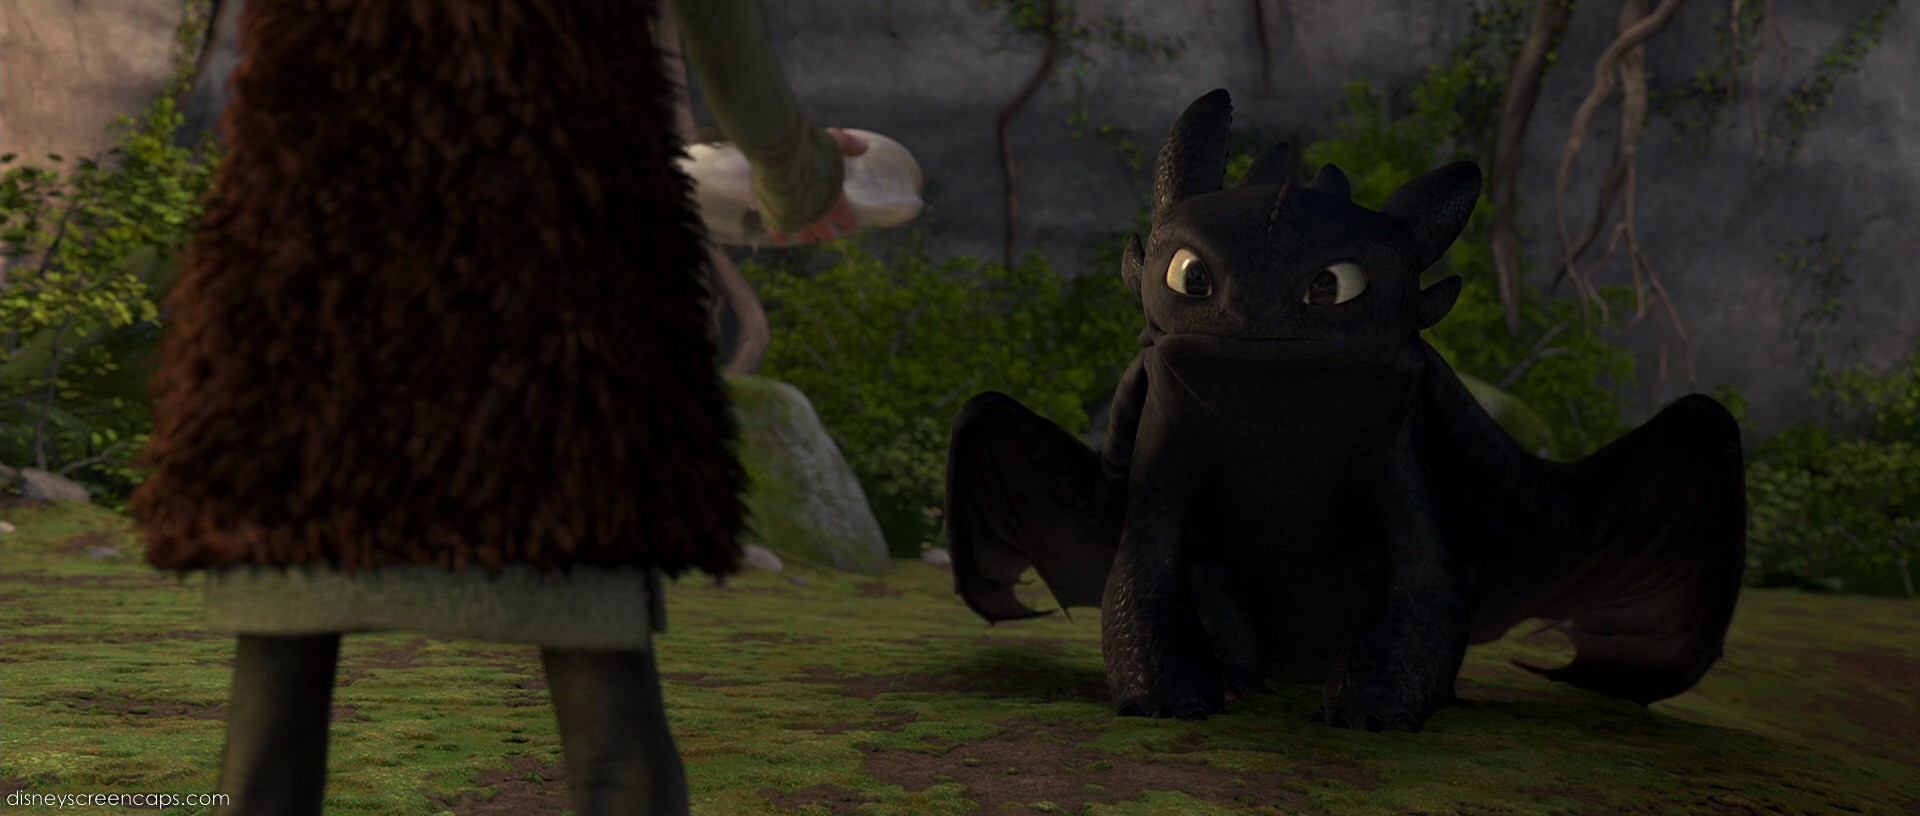 pictures of toothless from how to train your dragon 2